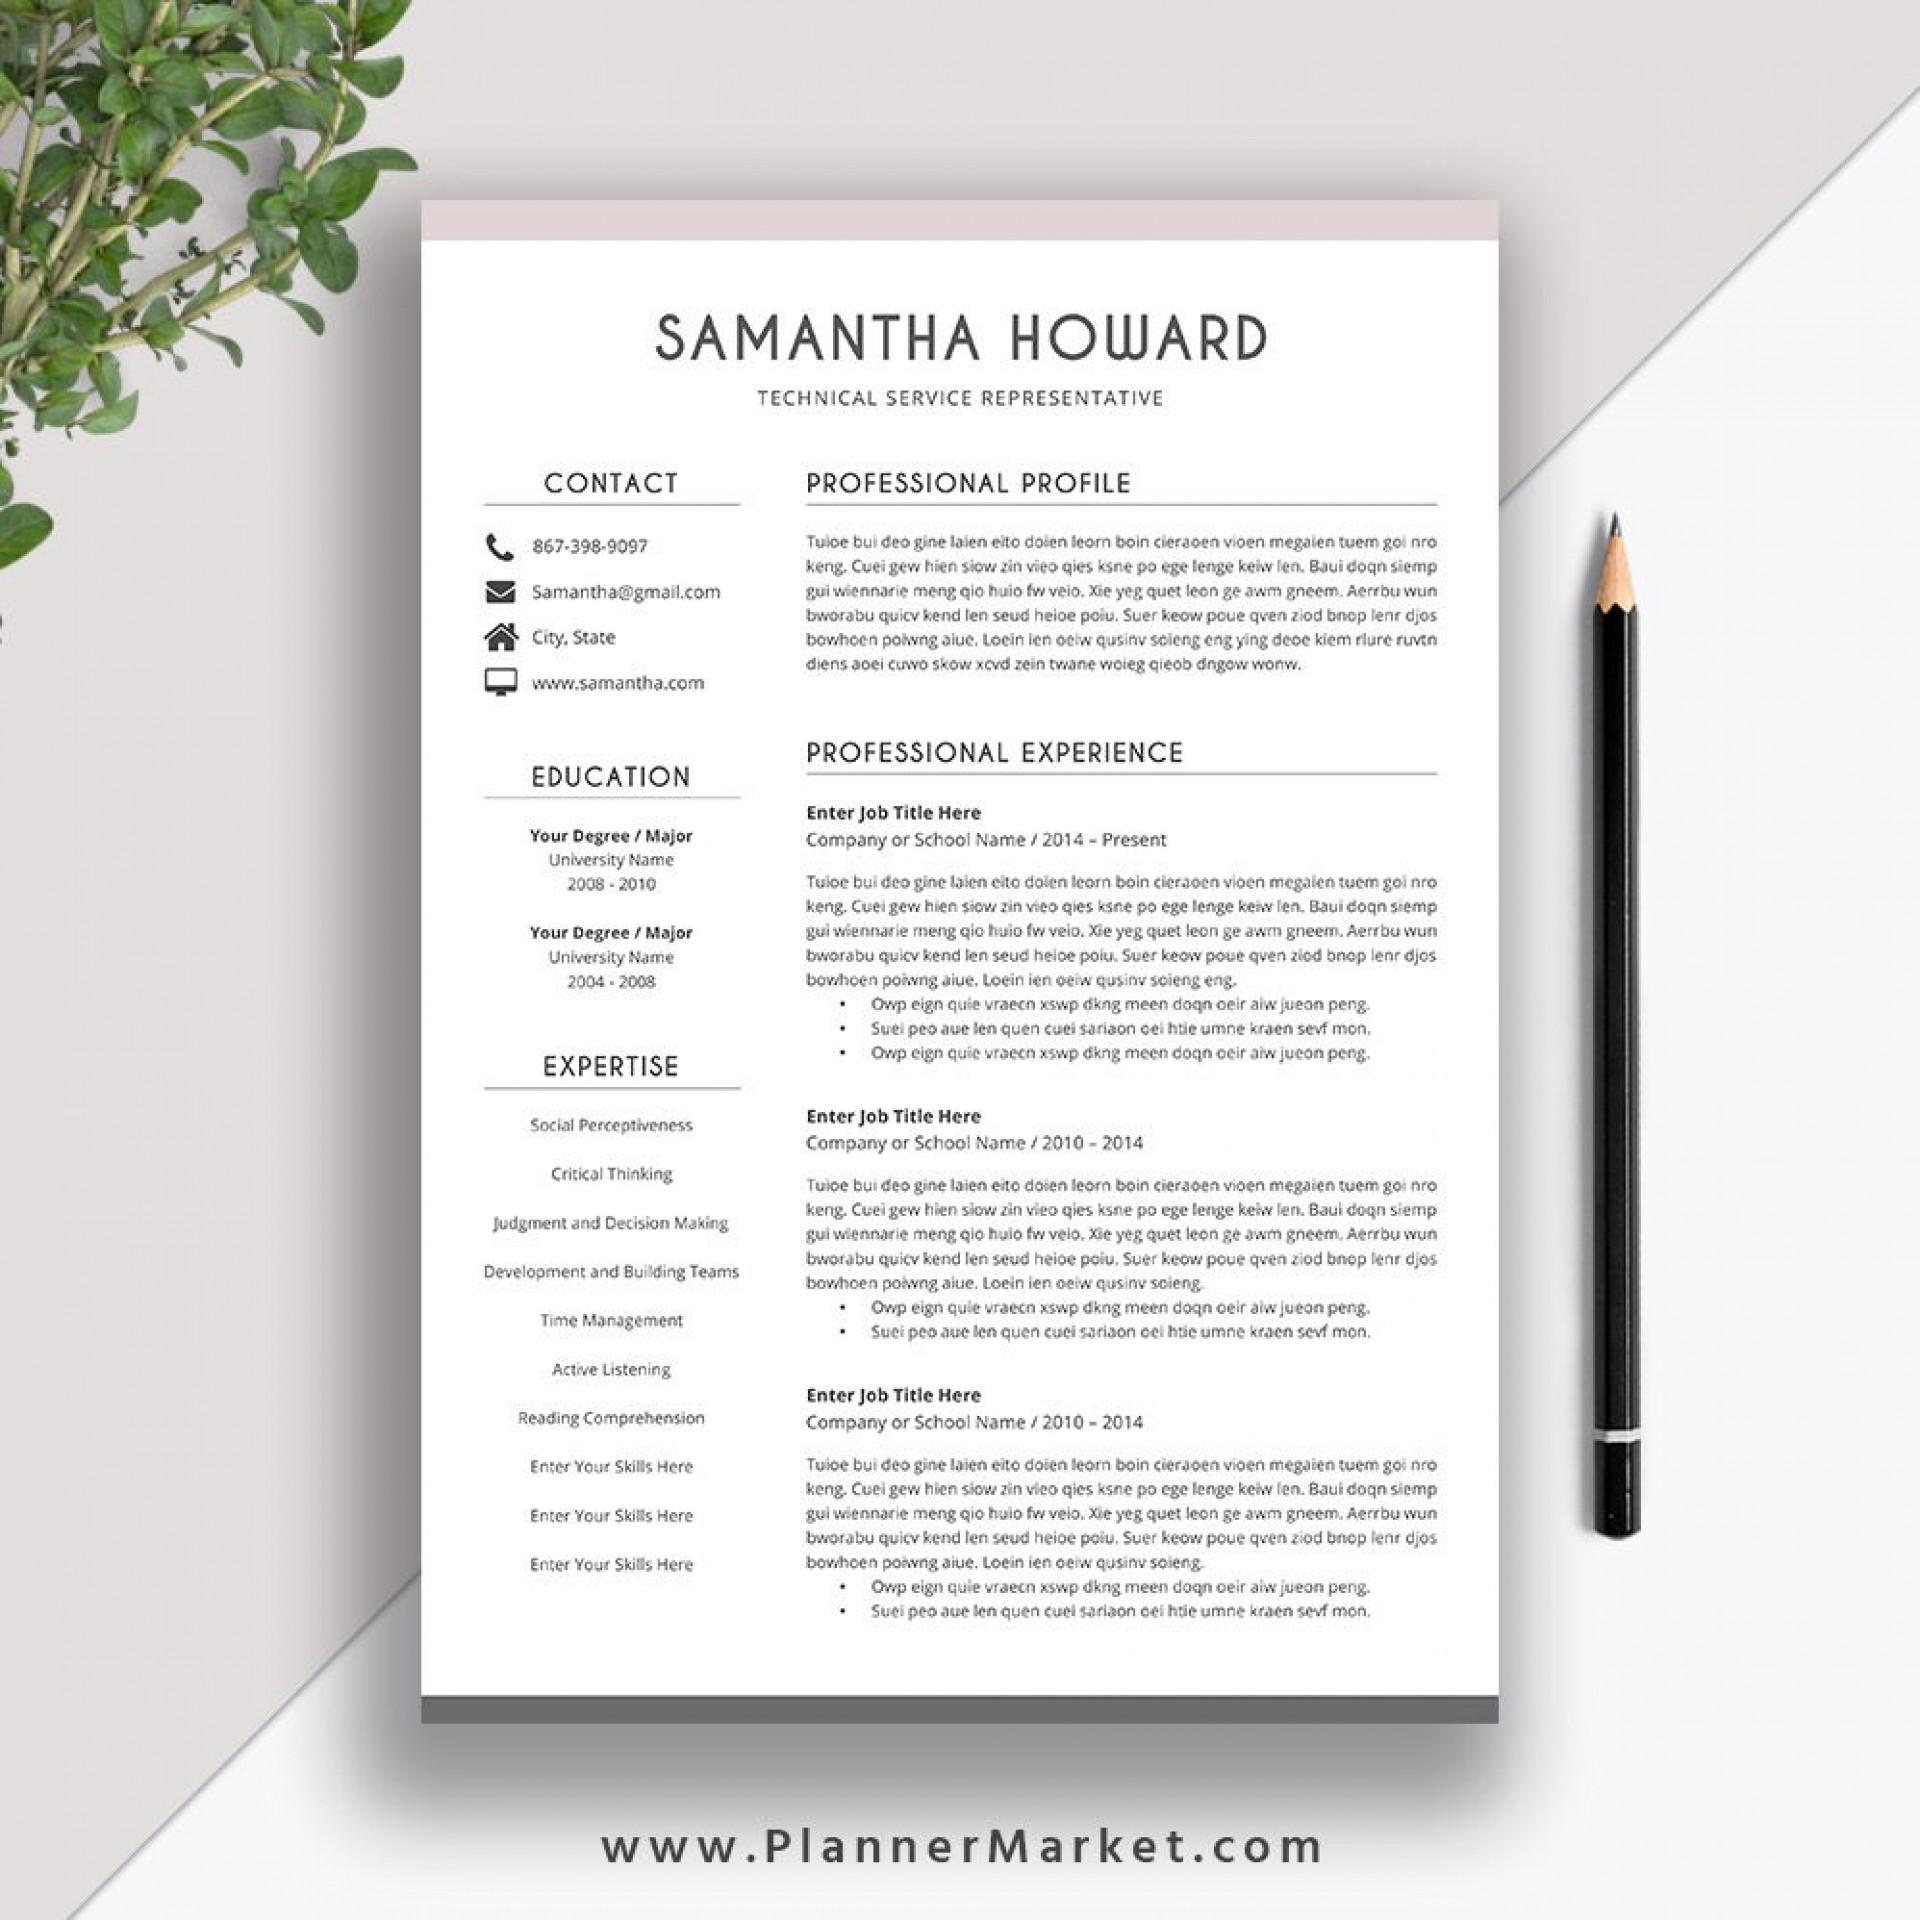 006 Surprising Resume Template Microsoft Word 2007 Image  In Office M1920